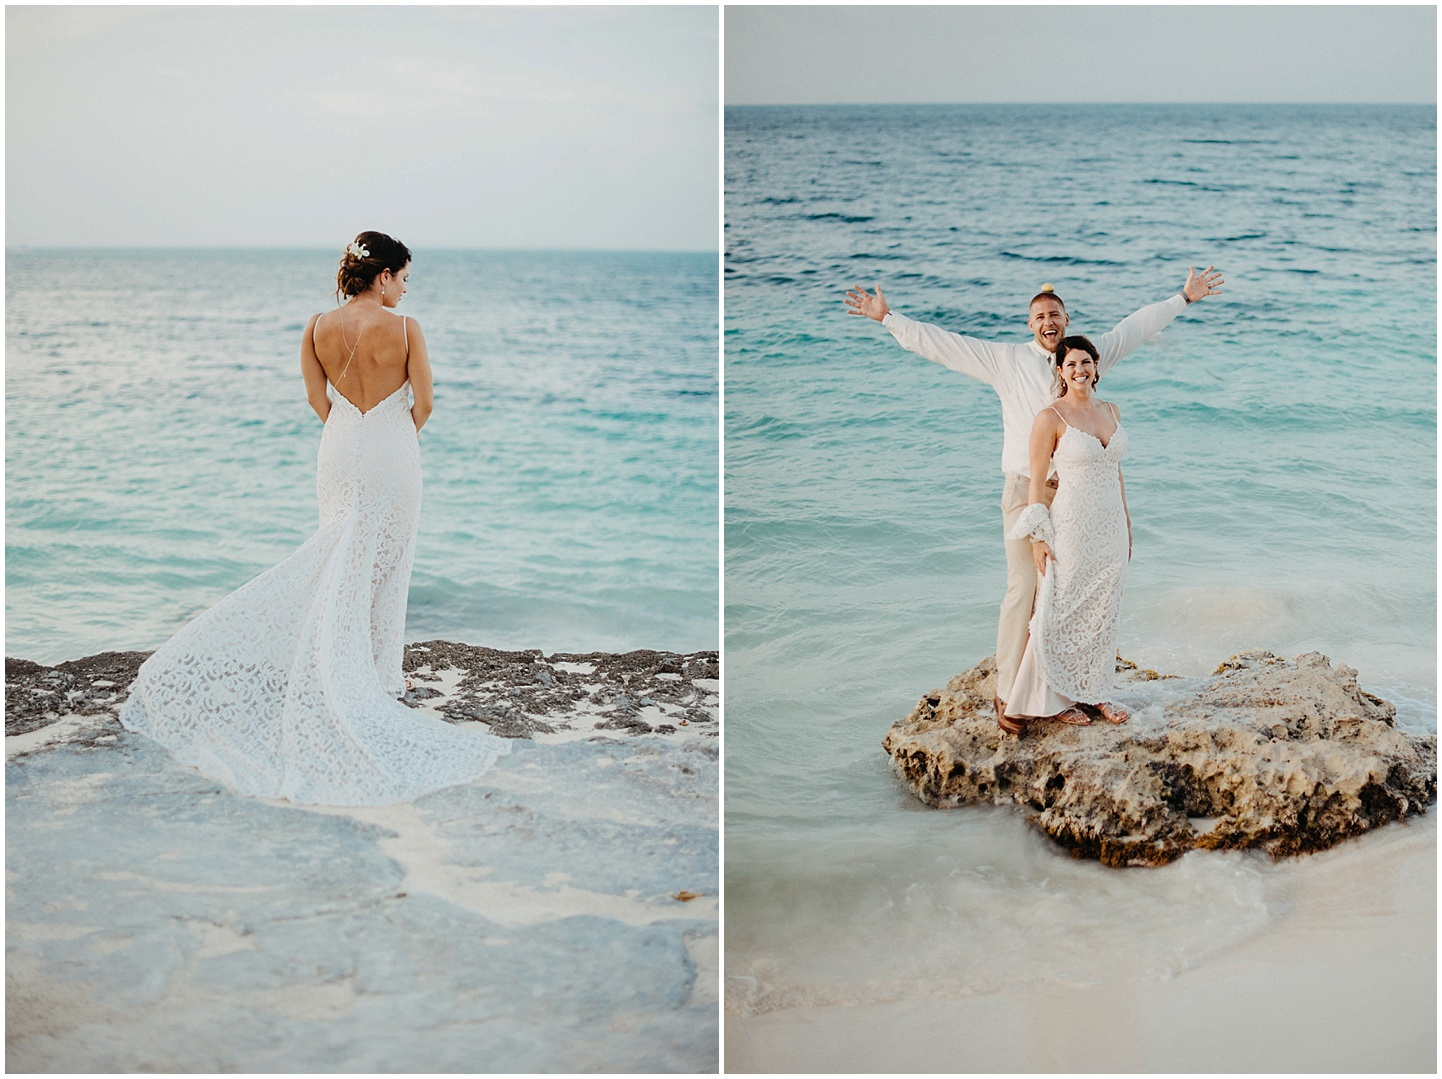 2Beach-Wedding-Photography-Cancun-Elopement-Destination-Elopement-Photography-Destination-Beach-Wedding-+Costa-Rica-Wedding-Photography-Beach-Wedding-Photos-teresawoodhull-Cancun-Elopement-Beach-Wedding-+Sunset-Beach-Wedding-Fotografia-de-bodas-Nicoya-Peninsula-Elopement-Photographer-Santa-Teresa-Elopement-Photographer-Adventure-elopement-photographer-Santa-Teresa-Wedding-Photographer-Adventure-Wedding-Boda-playa-santa-teresa-Adventure-Wedding-Photography-Adventure-Wedding-Photographer-Beach-Elopement-Beach-Elopement-Photos-maddie-mae-Beach-Elopement-Photographer-Destination-Elopement-Photographer-Sunset-Beach-Elopement-Mexico-wedding-photographer-cabo-wedding-photographer-mexico-wedding-mexico-destination-wedding-cancun-destination-wedding-cancun-elopement-photographer-playa-del-carmen-wedding-playa-del-carmen-destination-wedding-photographer-playa-del-carmen-wedding-photography-Nicoya-Peninsula-Wedding-Photography-Nicoya-Peninsula-Wedding-Photographer-Nicoya-Peninsula-Elopement-Photography-backless-wedding-dress-beach